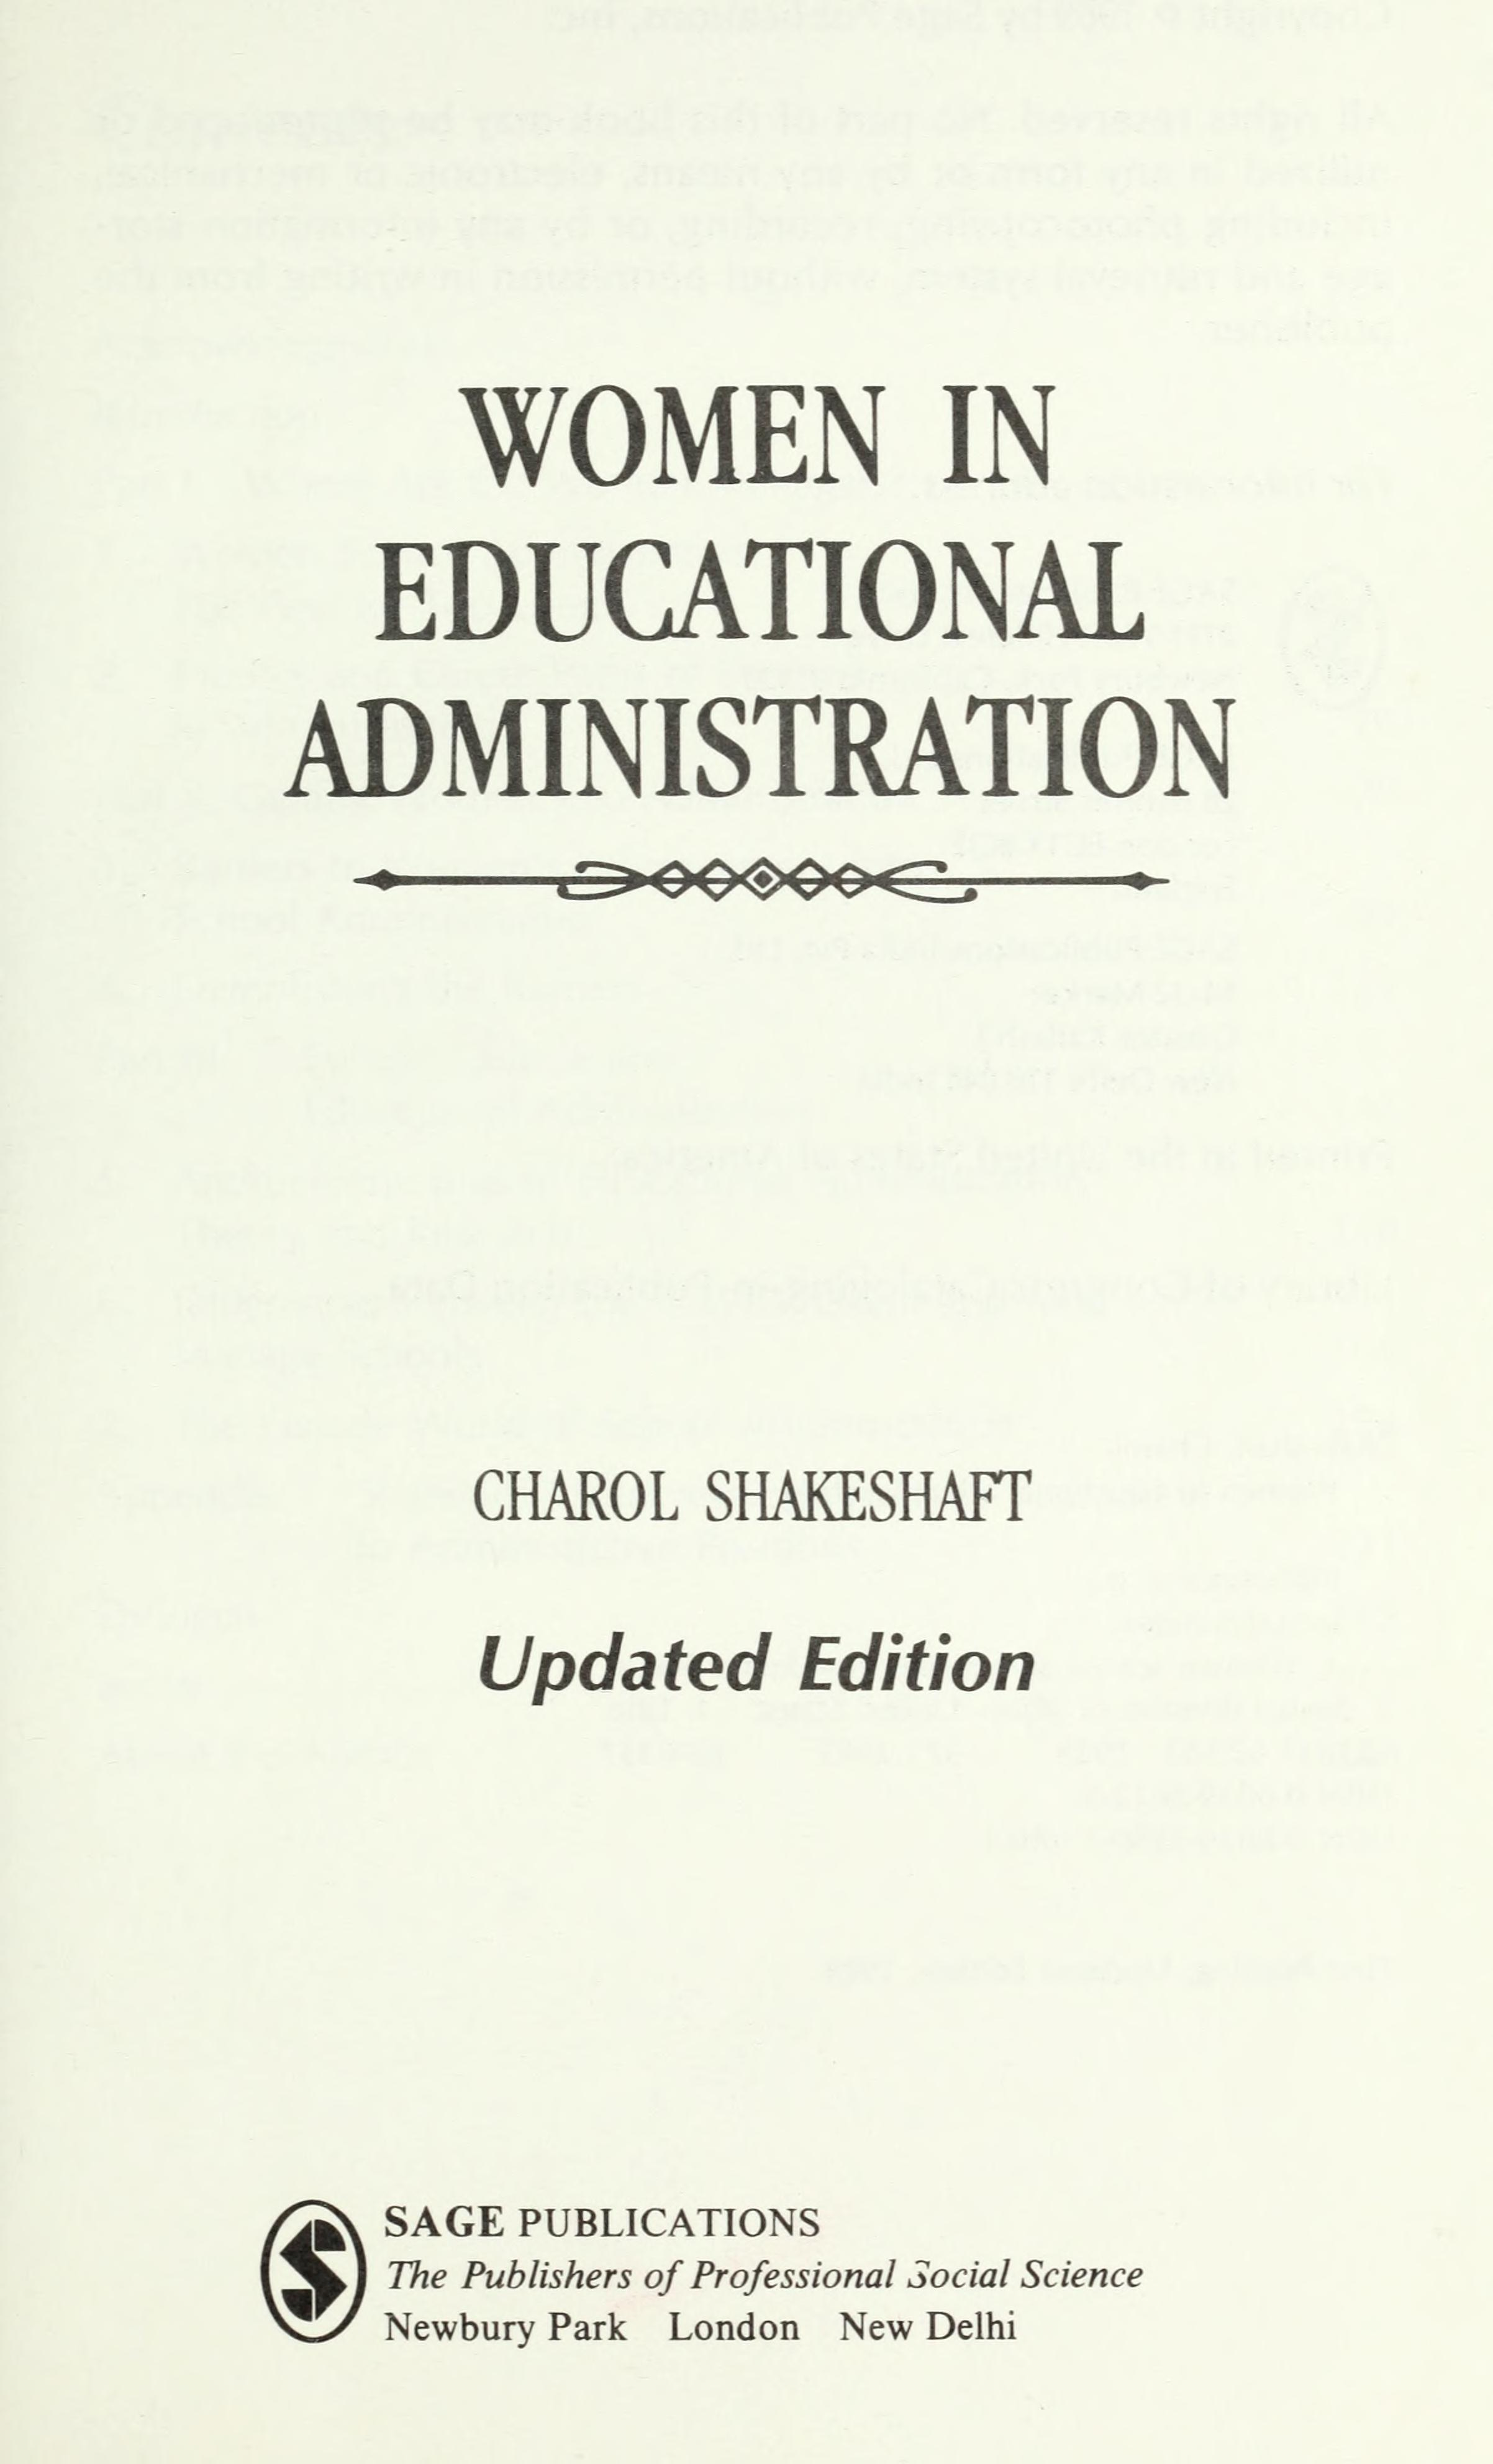 Ebook women in educational administration download online audio ebook women in educational administration download online audio idvsazo48 fandeluxe Gallery